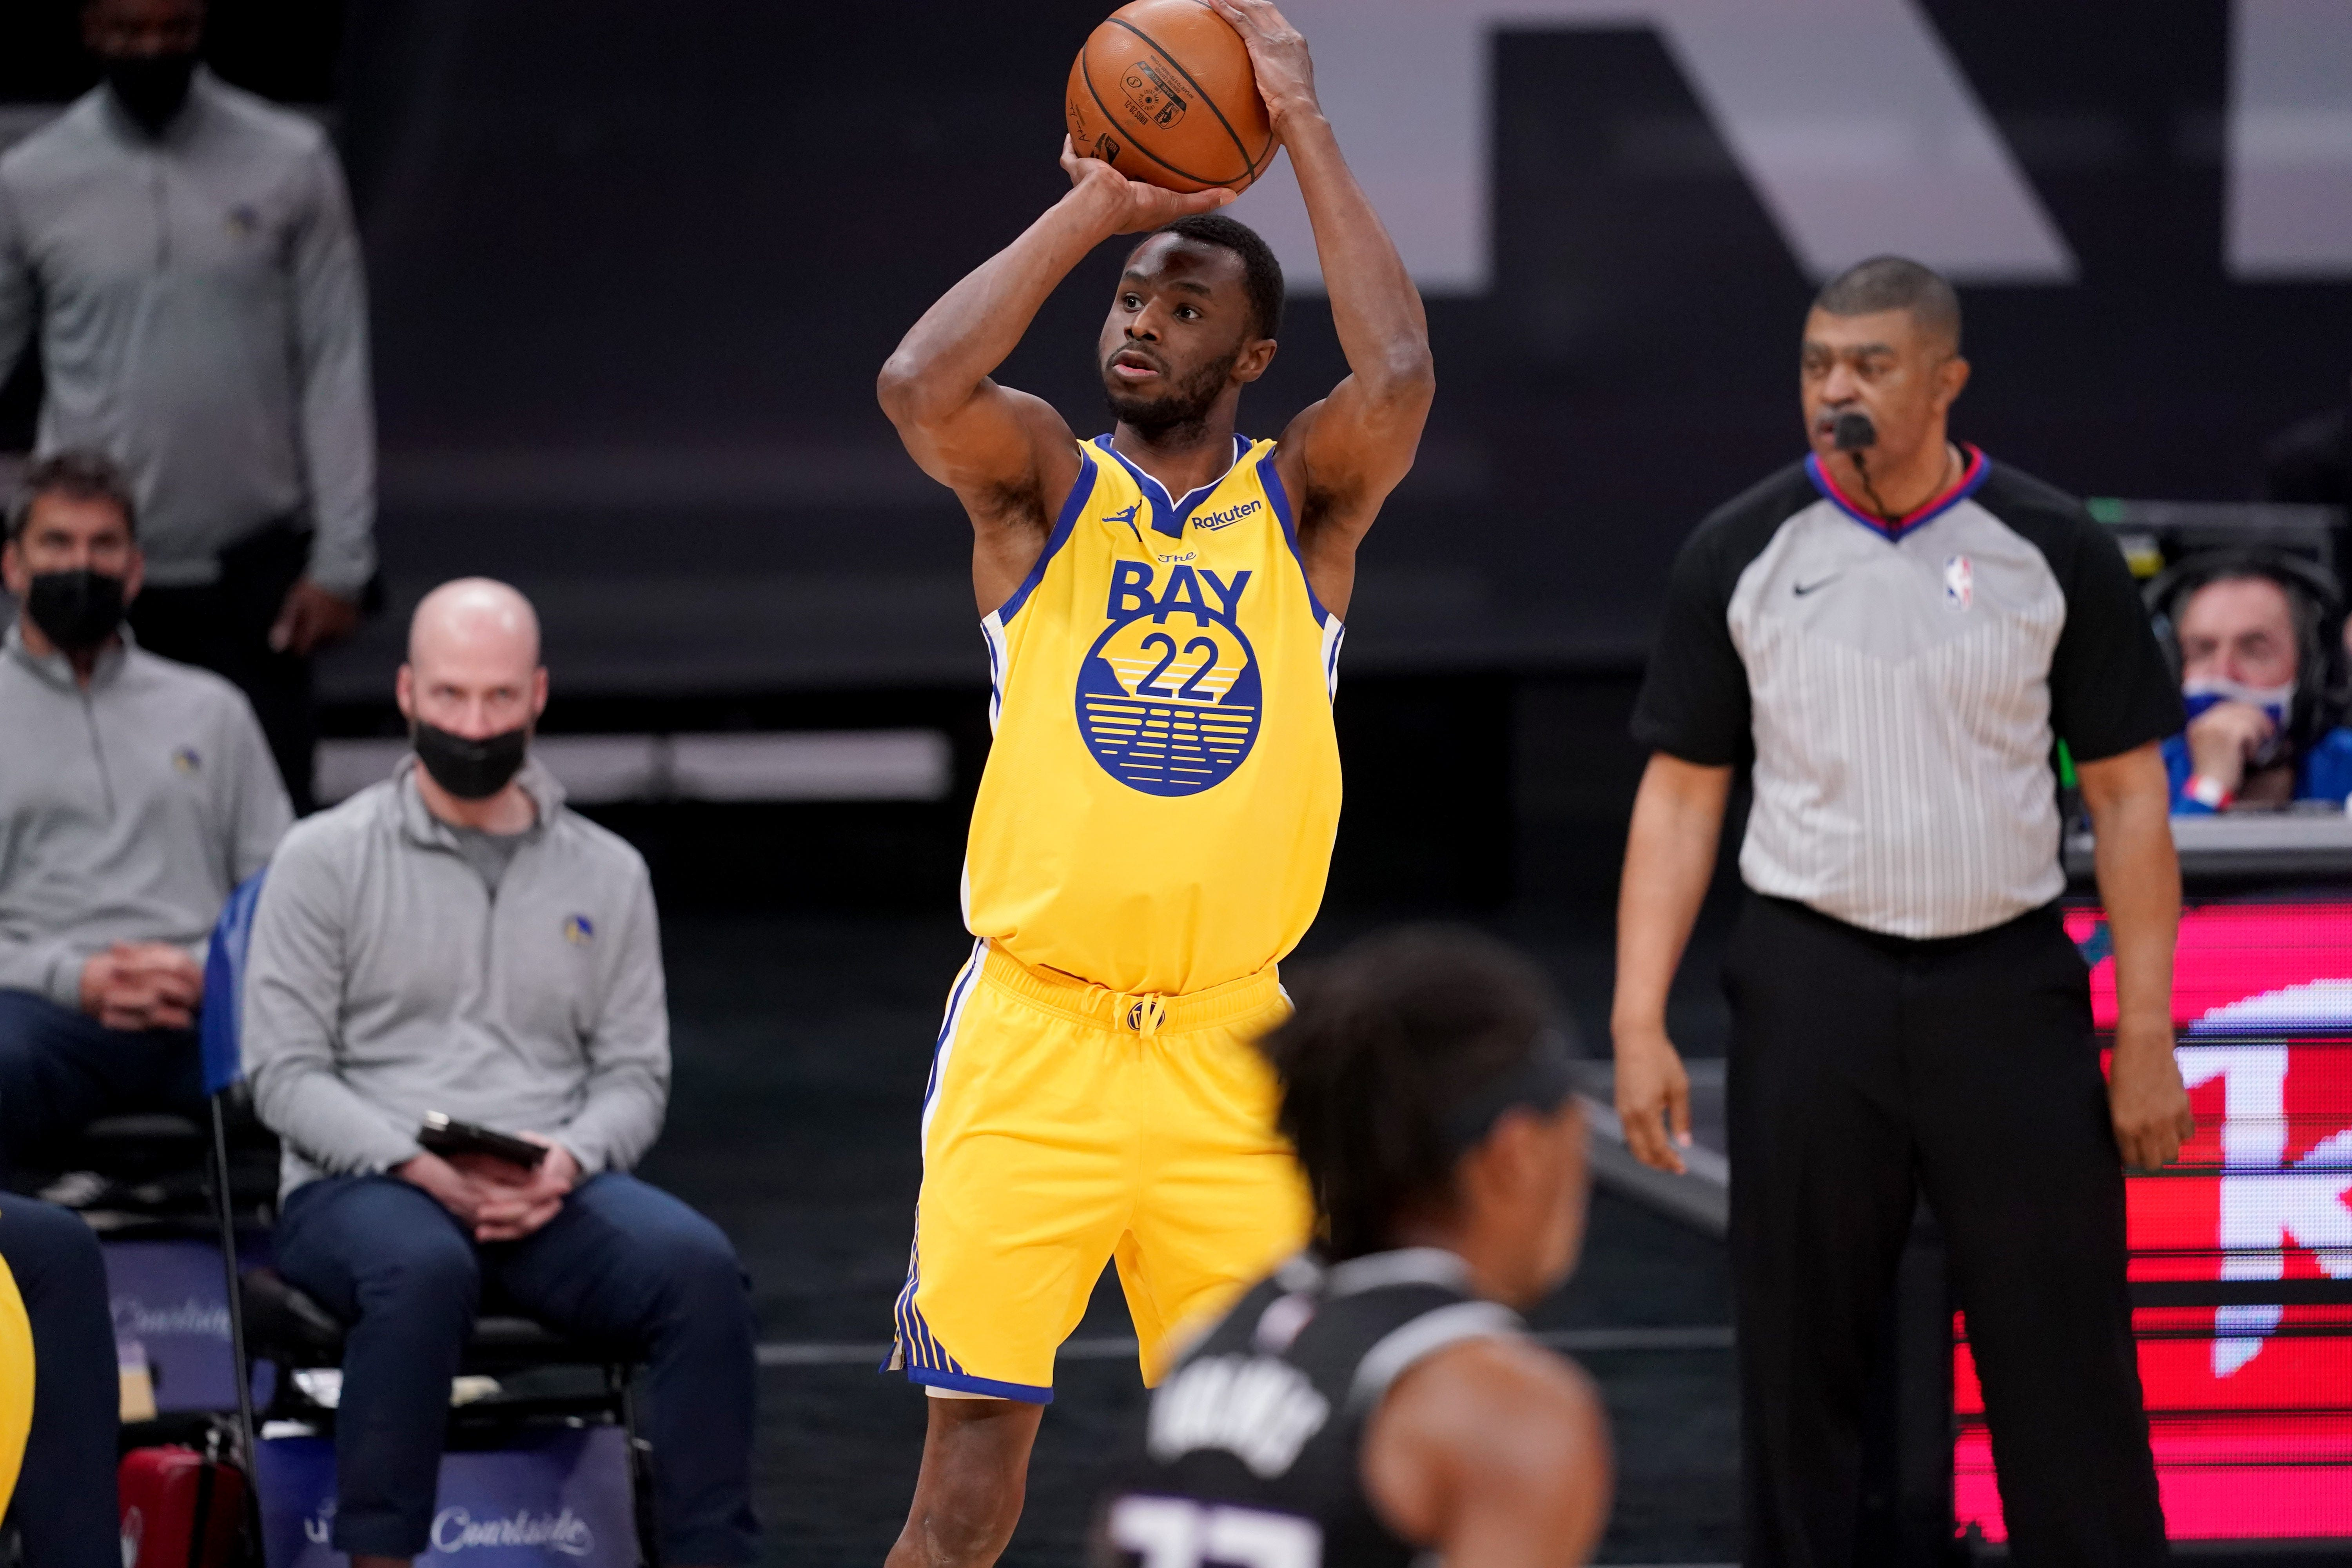 Andrew Wiggins  request for COVID-19 vaccine exemption denied, won t be able to play in Warriors home games